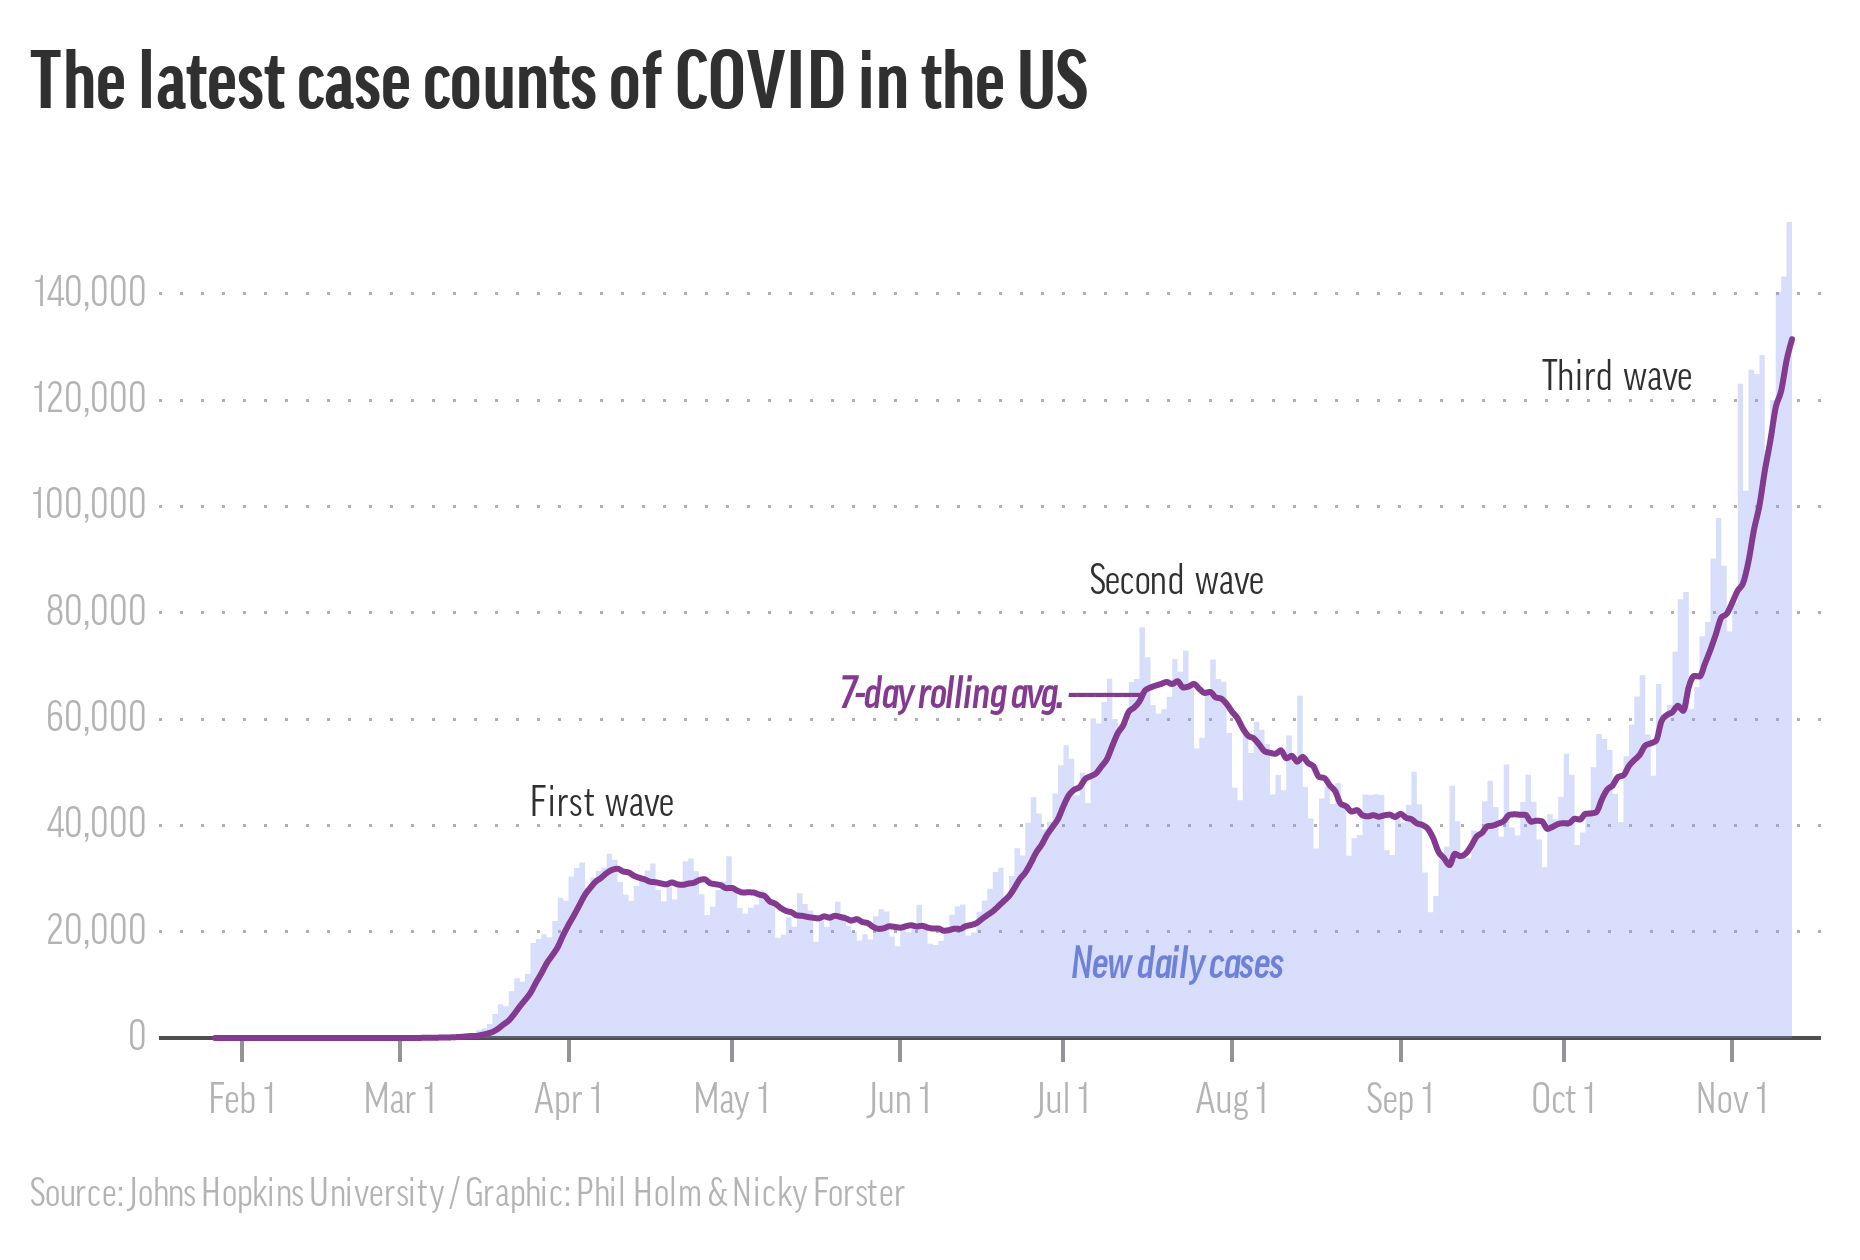 Lastest Case Counts of Covid in the US